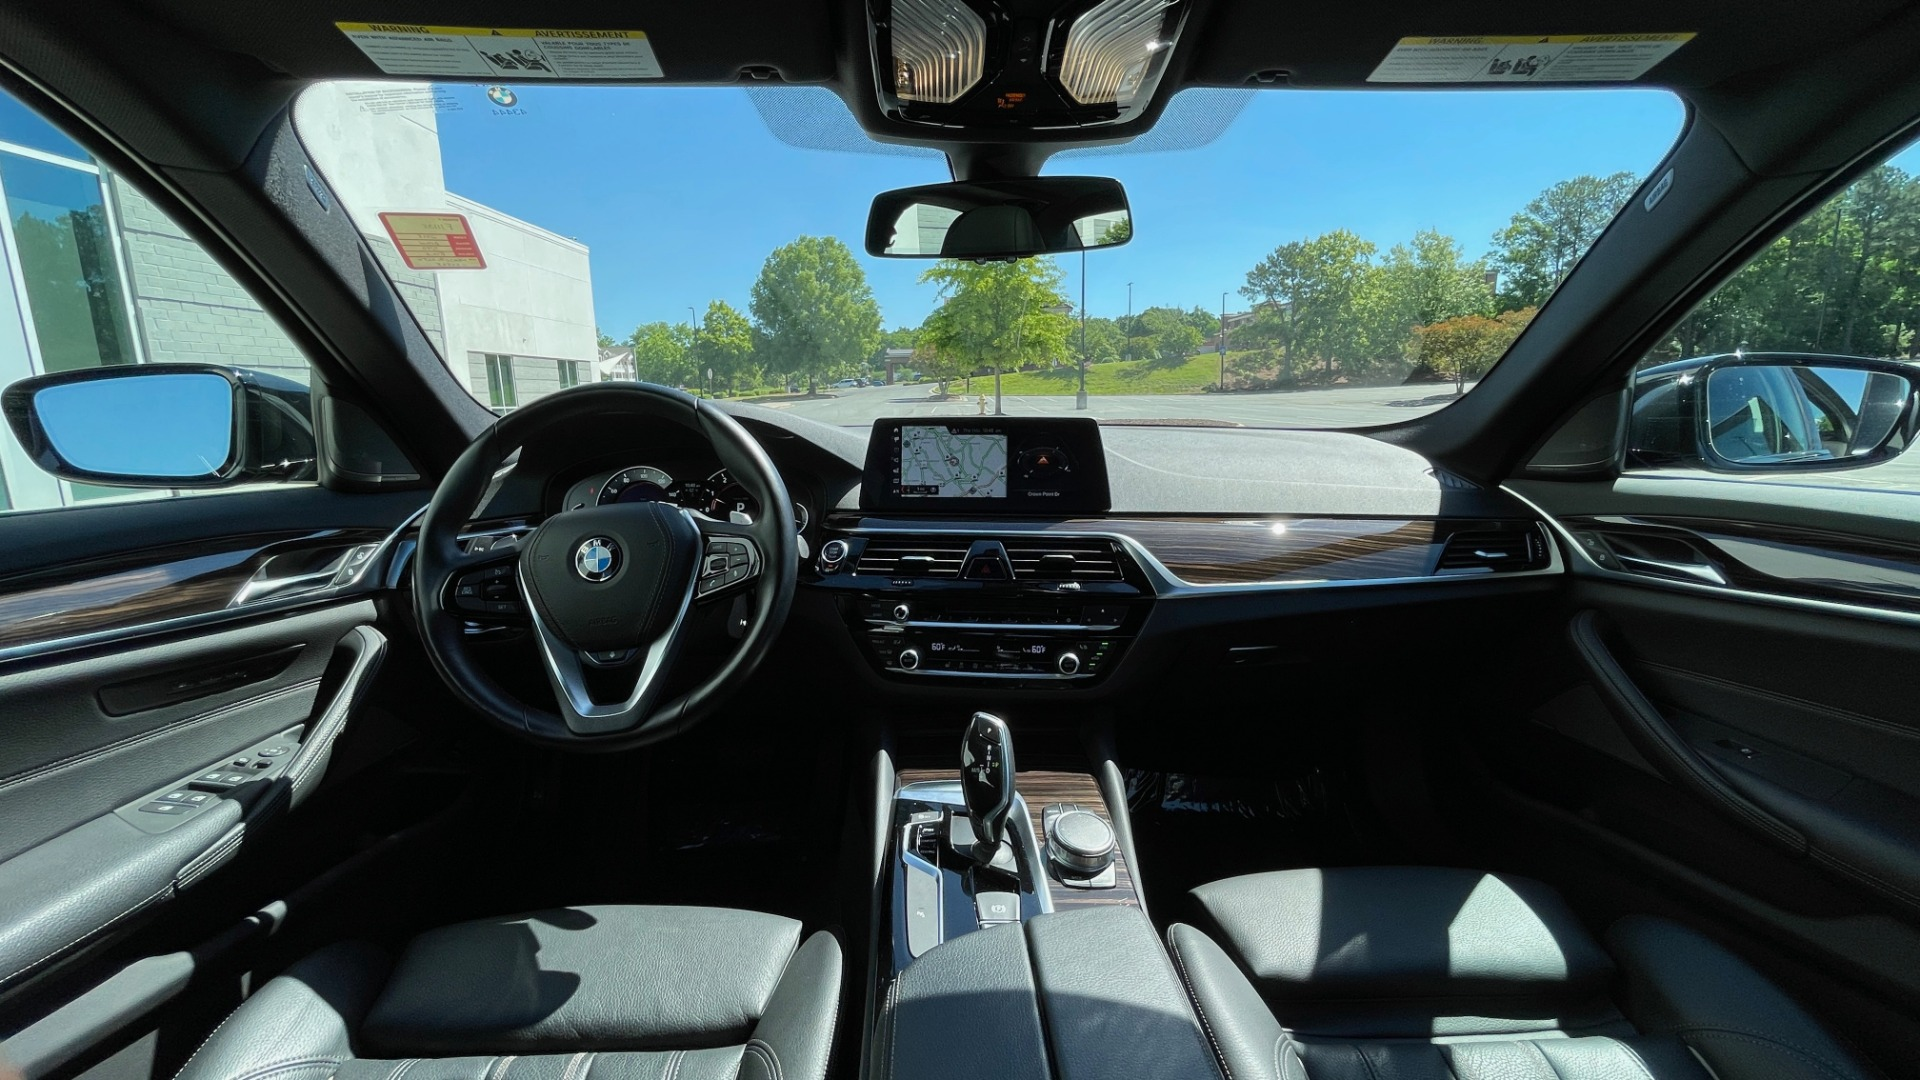 Used 2018 BMW 5 SERIES 540I XDRIVE PREMIUM / NAV / PARK ASST / WIRELESS CHARGING H/K SND for sale $38,395 at Formula Imports in Charlotte NC 28227 73